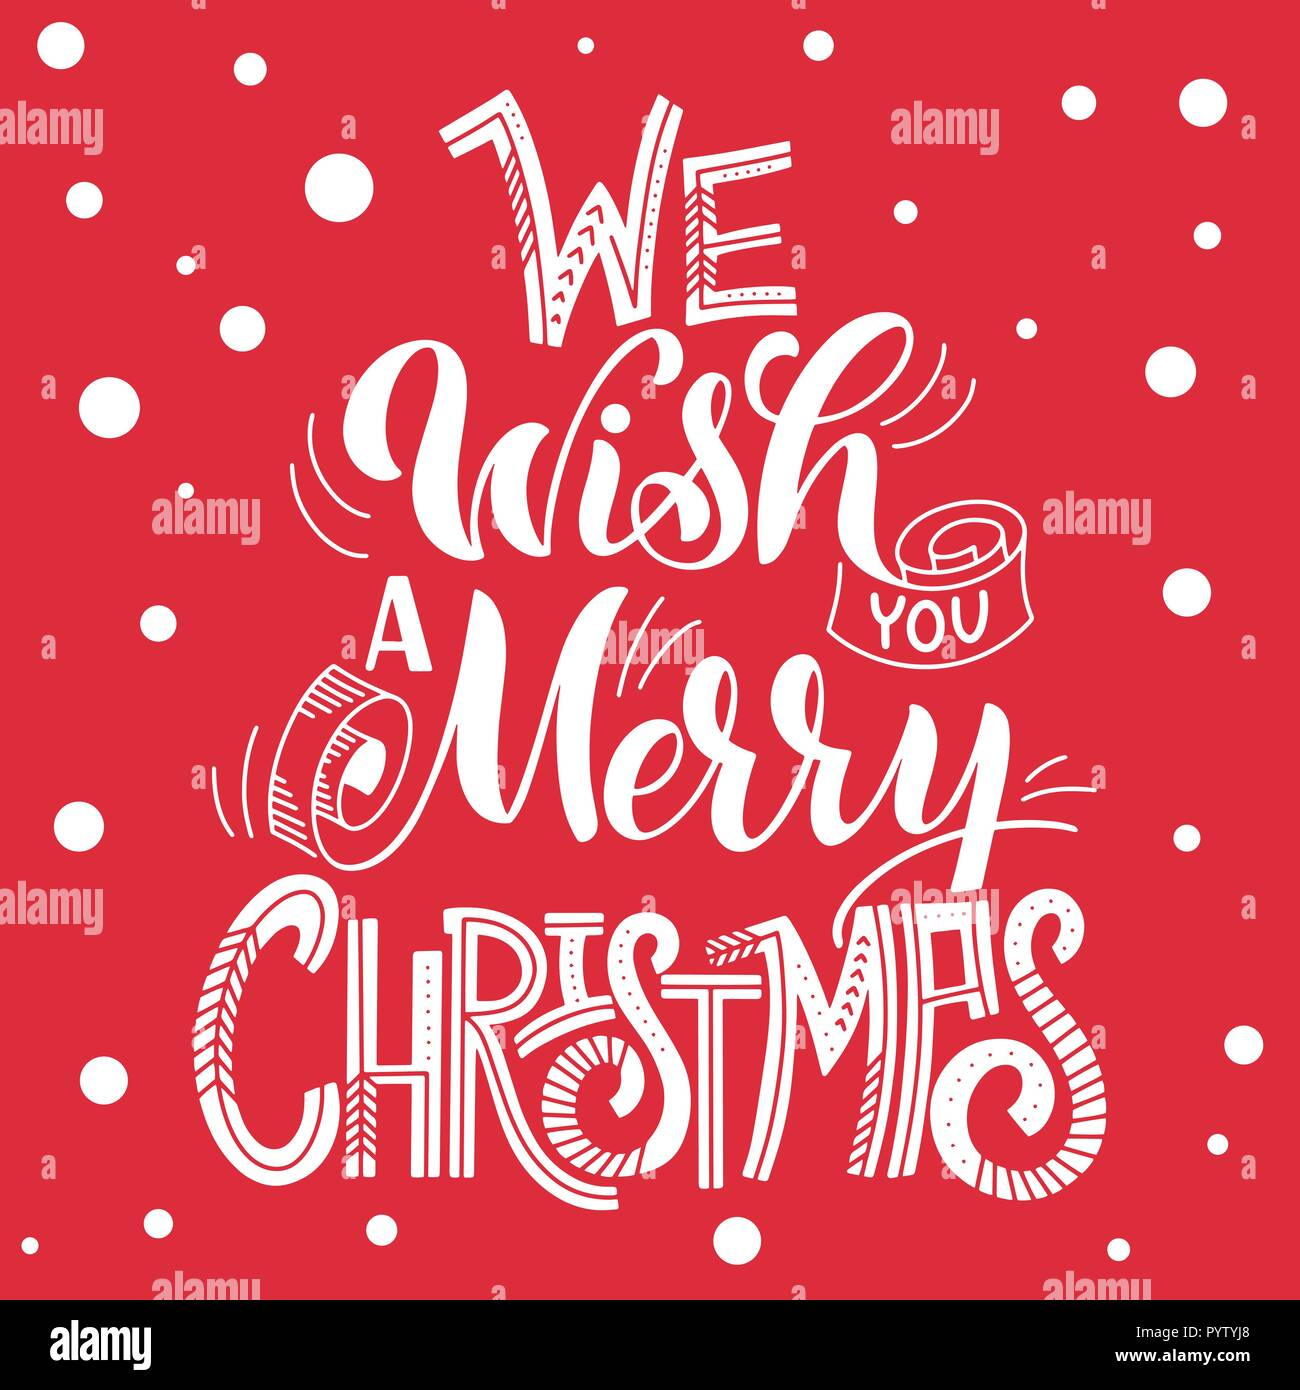 We wish you a Merry Christmas. Elements for invitations, posters ...